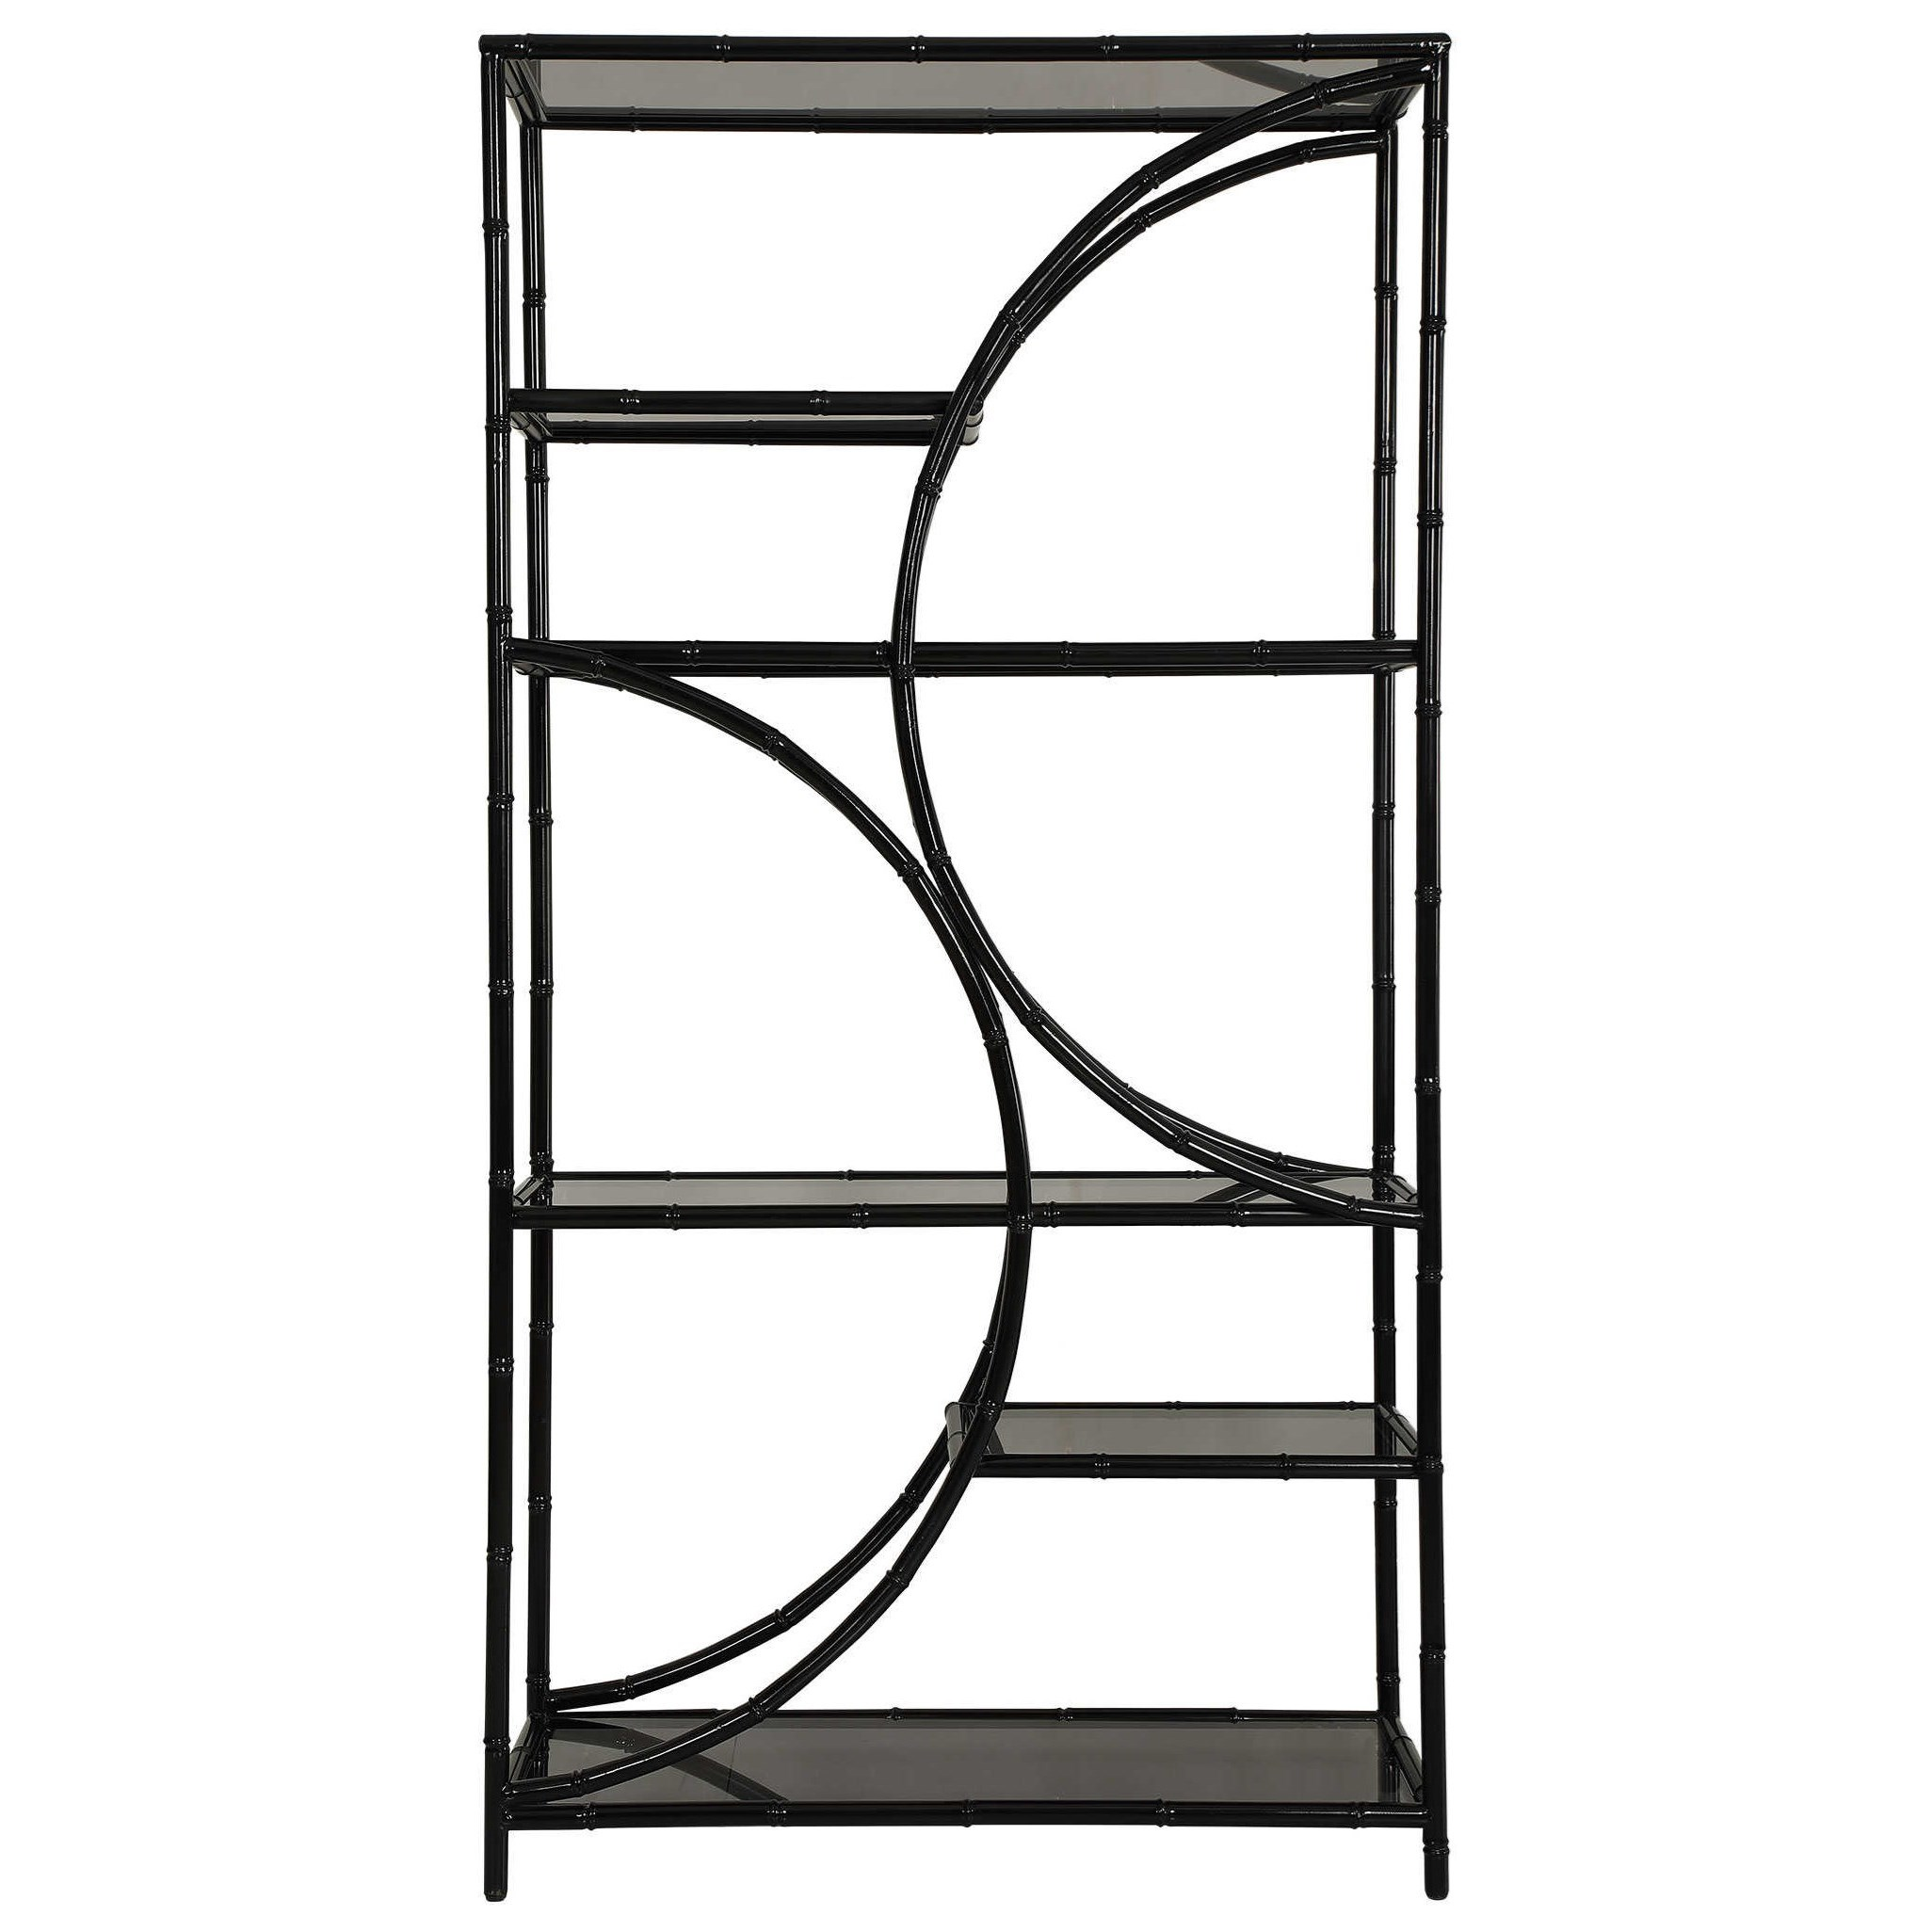 Accent Furniture - Bookcases Black Iron Etagere by Uttermost at Upper Room Home Furnishings